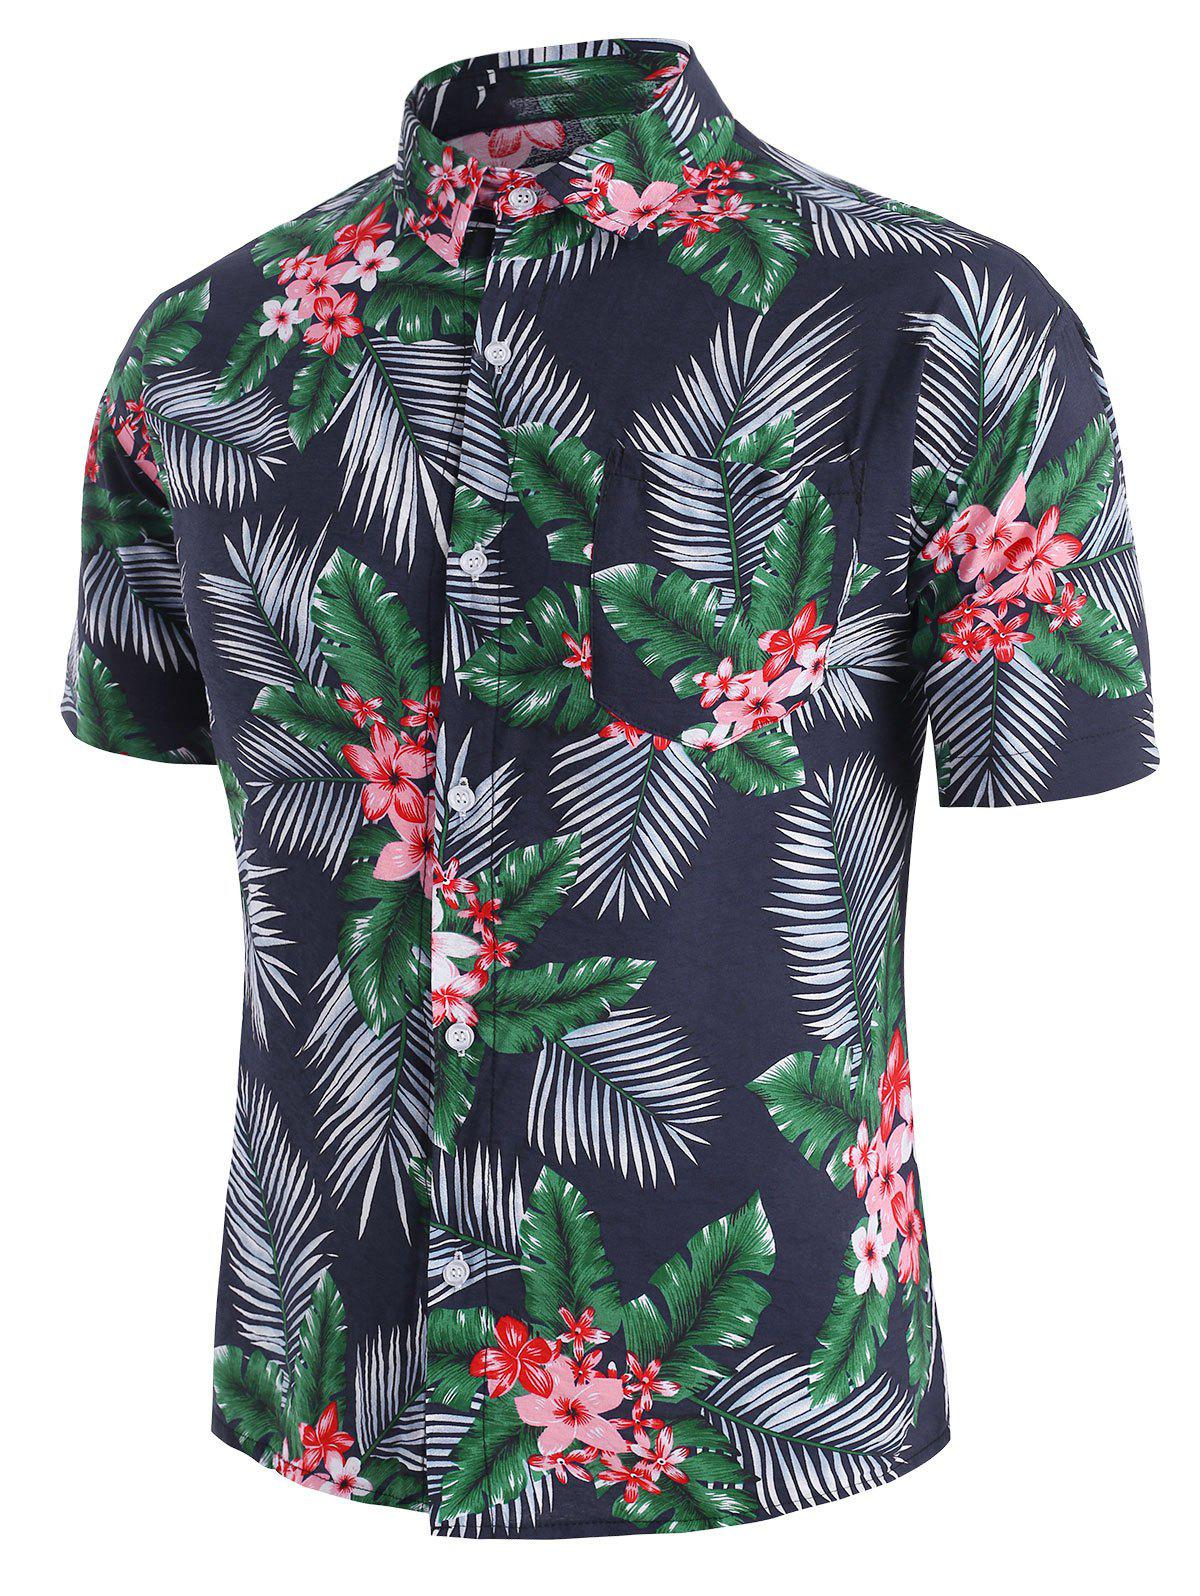 Chic Tropical Flower Leaf Beach Shirt